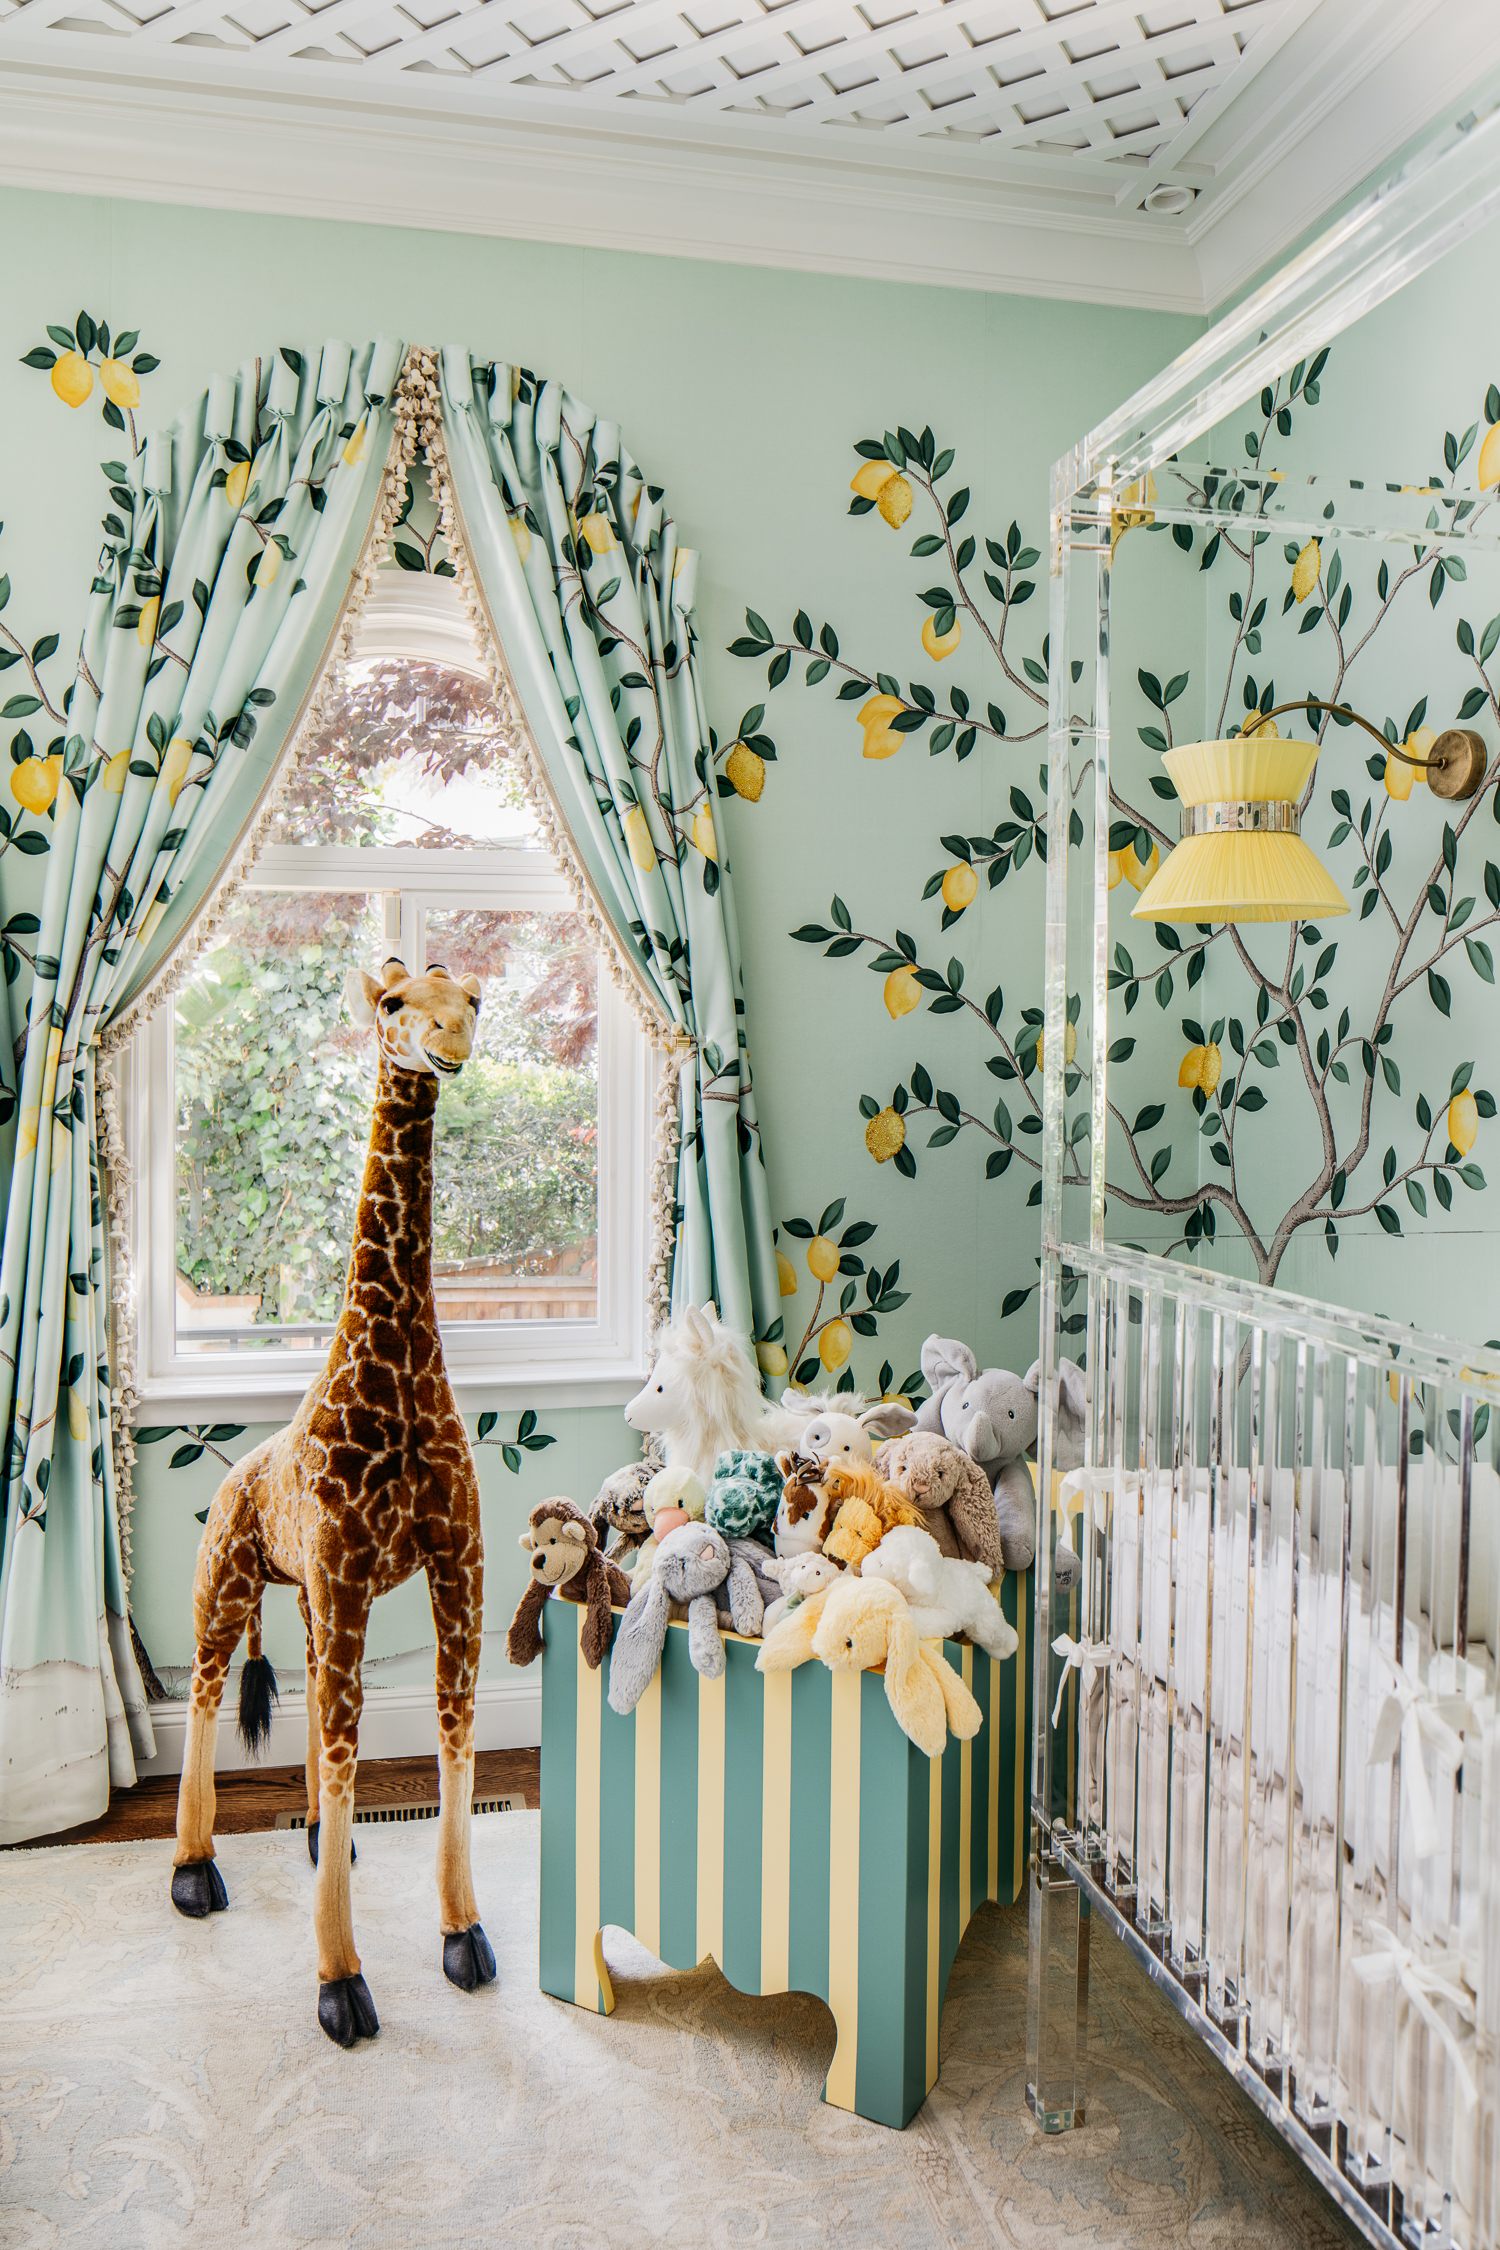 Stuffed Animal Storage in Lemon Drop Nursery